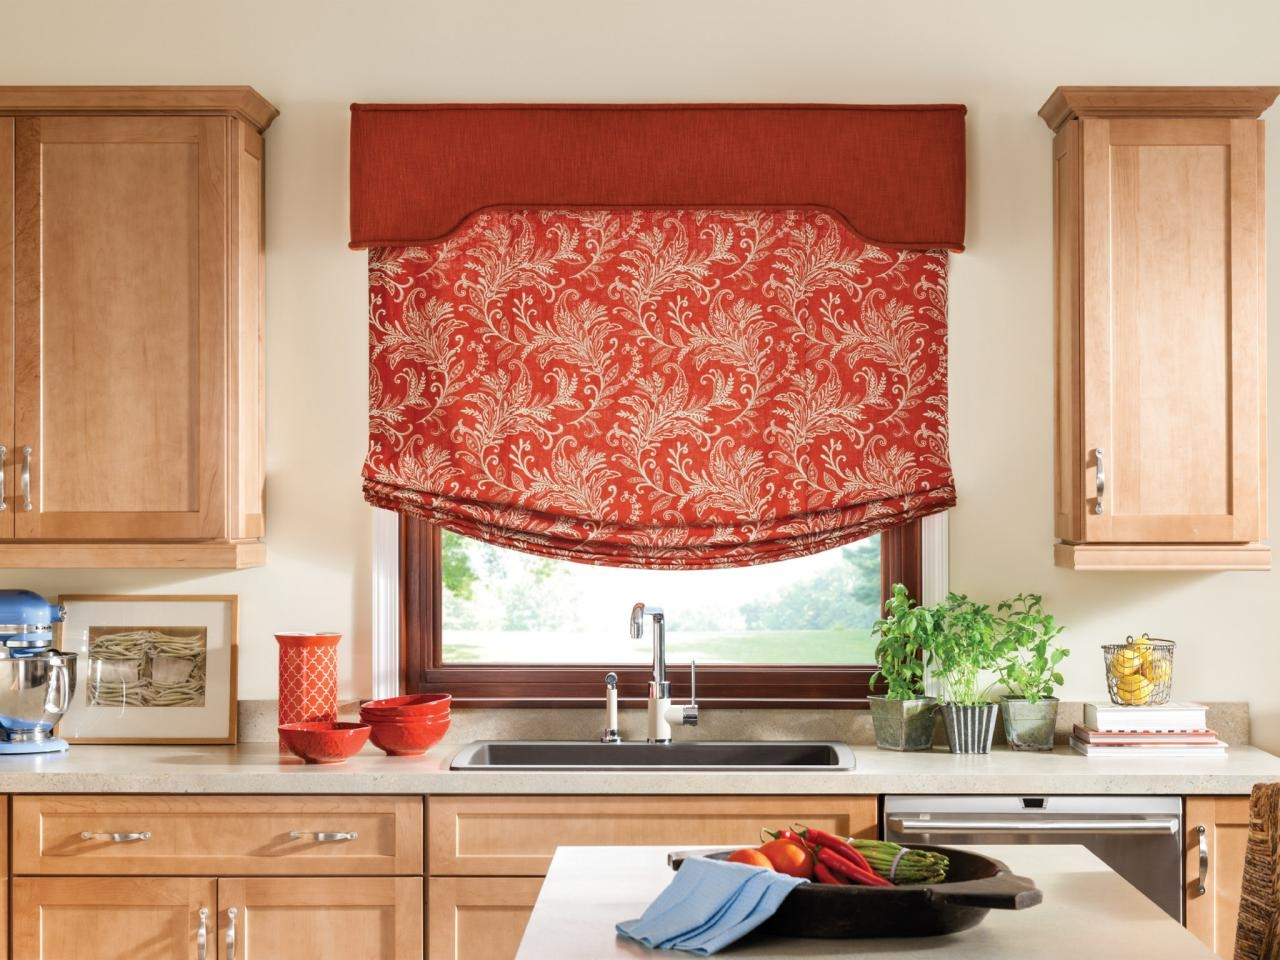 Photo Page Hgtv Regarding Red Roman Blinds Kitchen (Image 8 of 15)